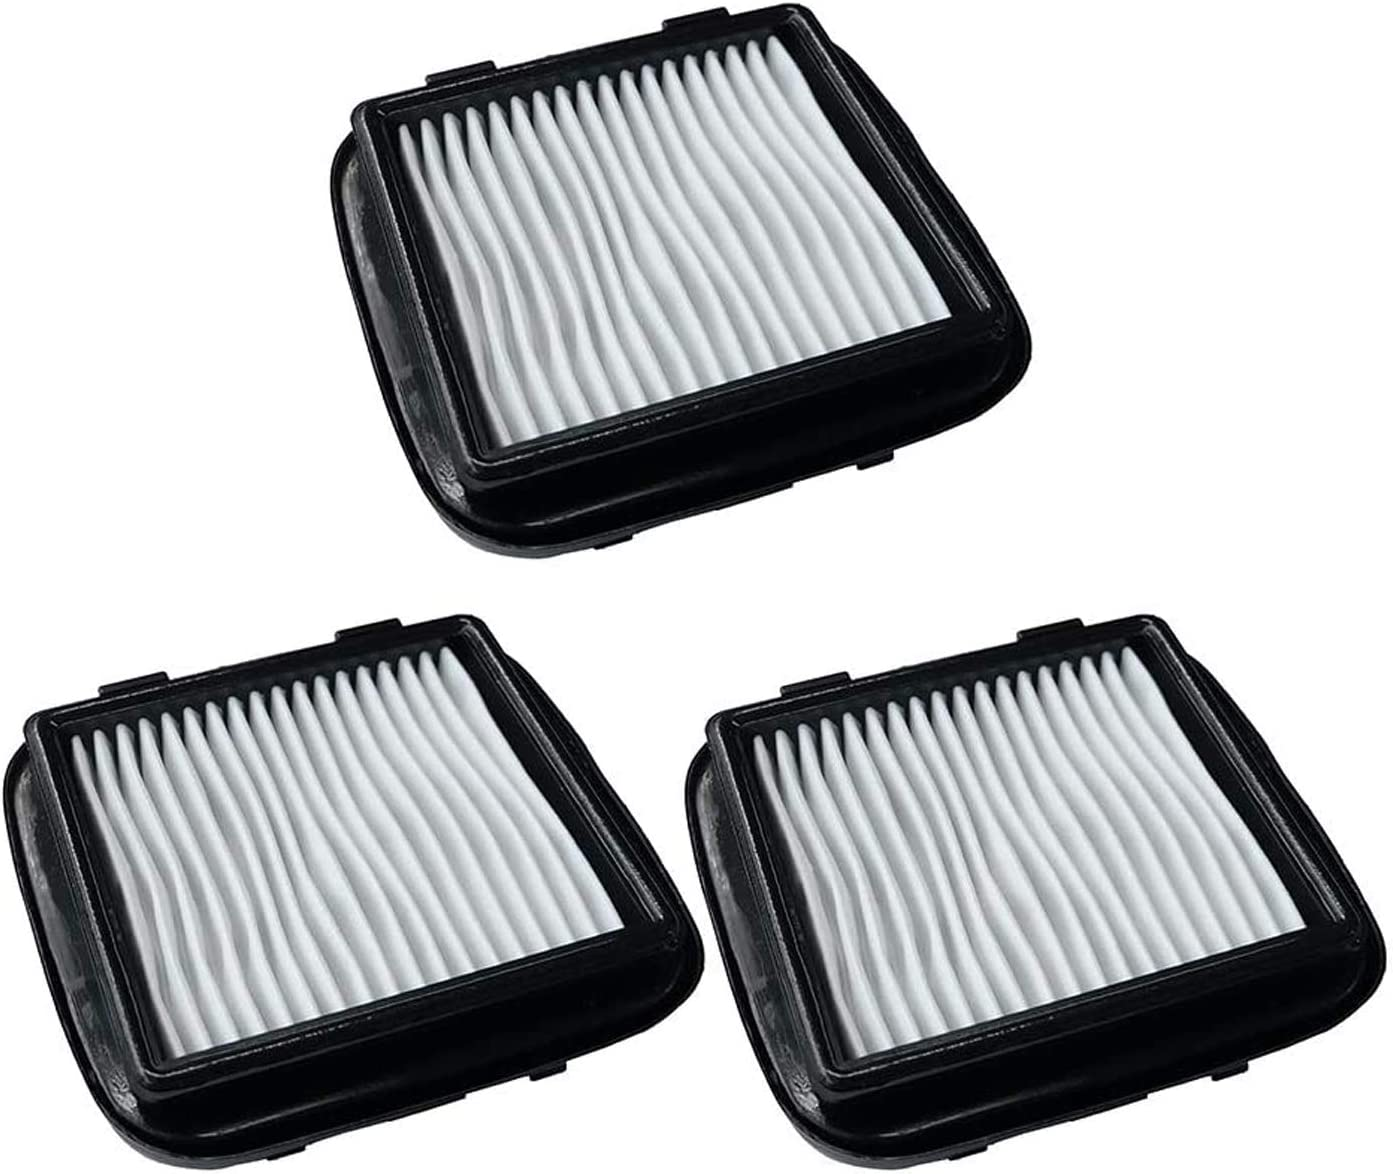 Reinlichkeit 3 Pack Replacement 97D5 Filter Comepatible with Bissell Automate Cleanview Part 2037416, 2031432, Fits 27K6, 33A1B, 47R5A, 47R5B, 33A1, 47R5, 47R51